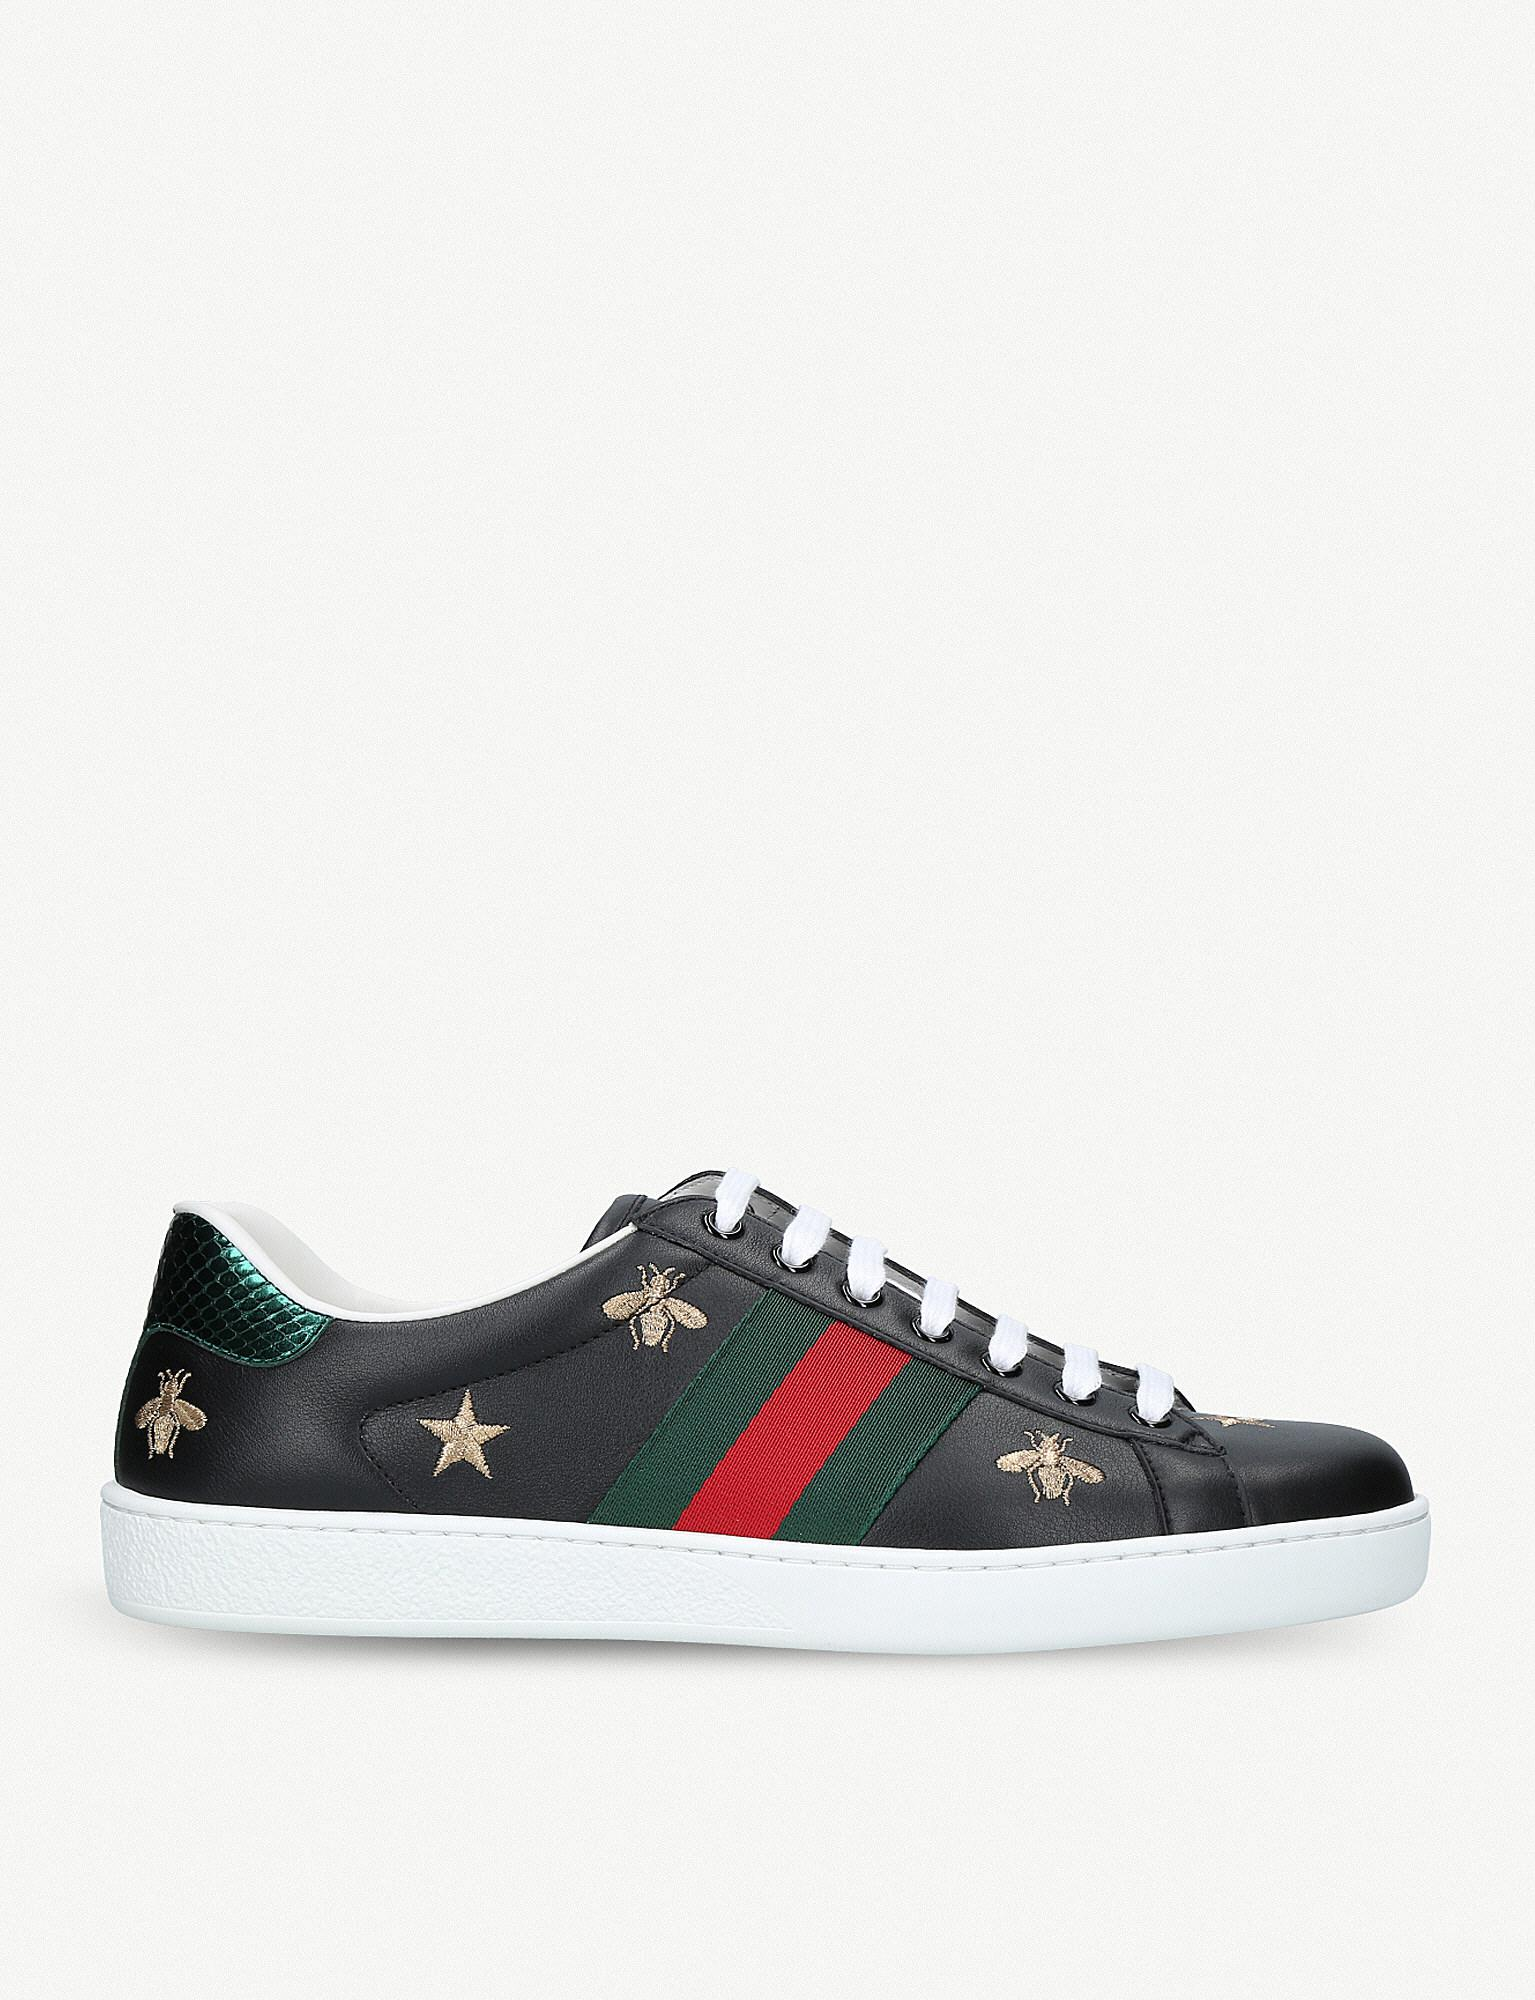 945f3b2fb4b Lyst - Gucci New Ace Bee-embroidered Leather Trainers in Black for Men